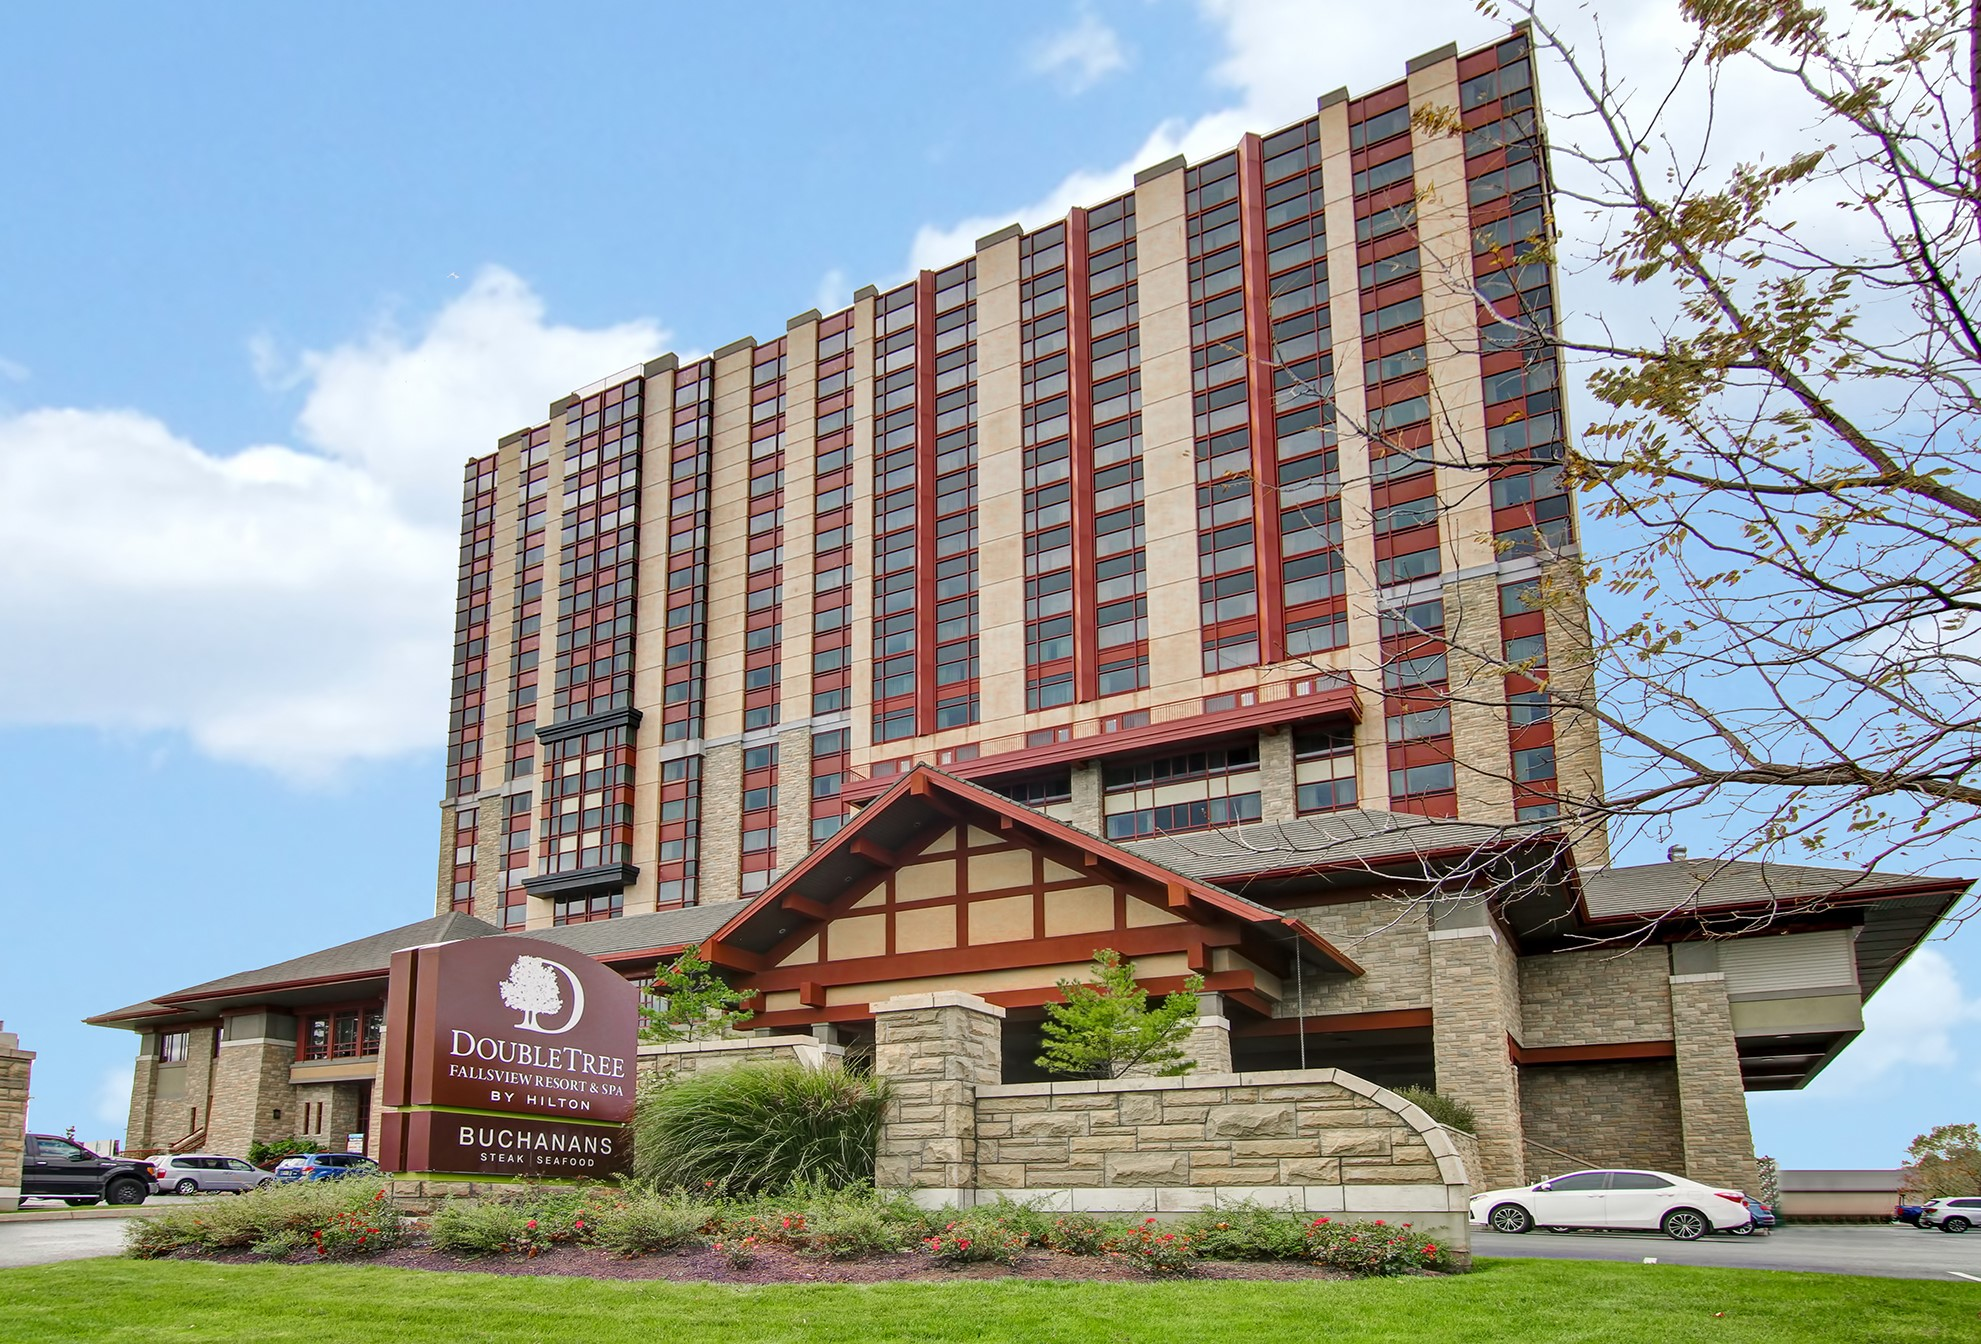 DOUBLETREE FALLSVIEW RESORT